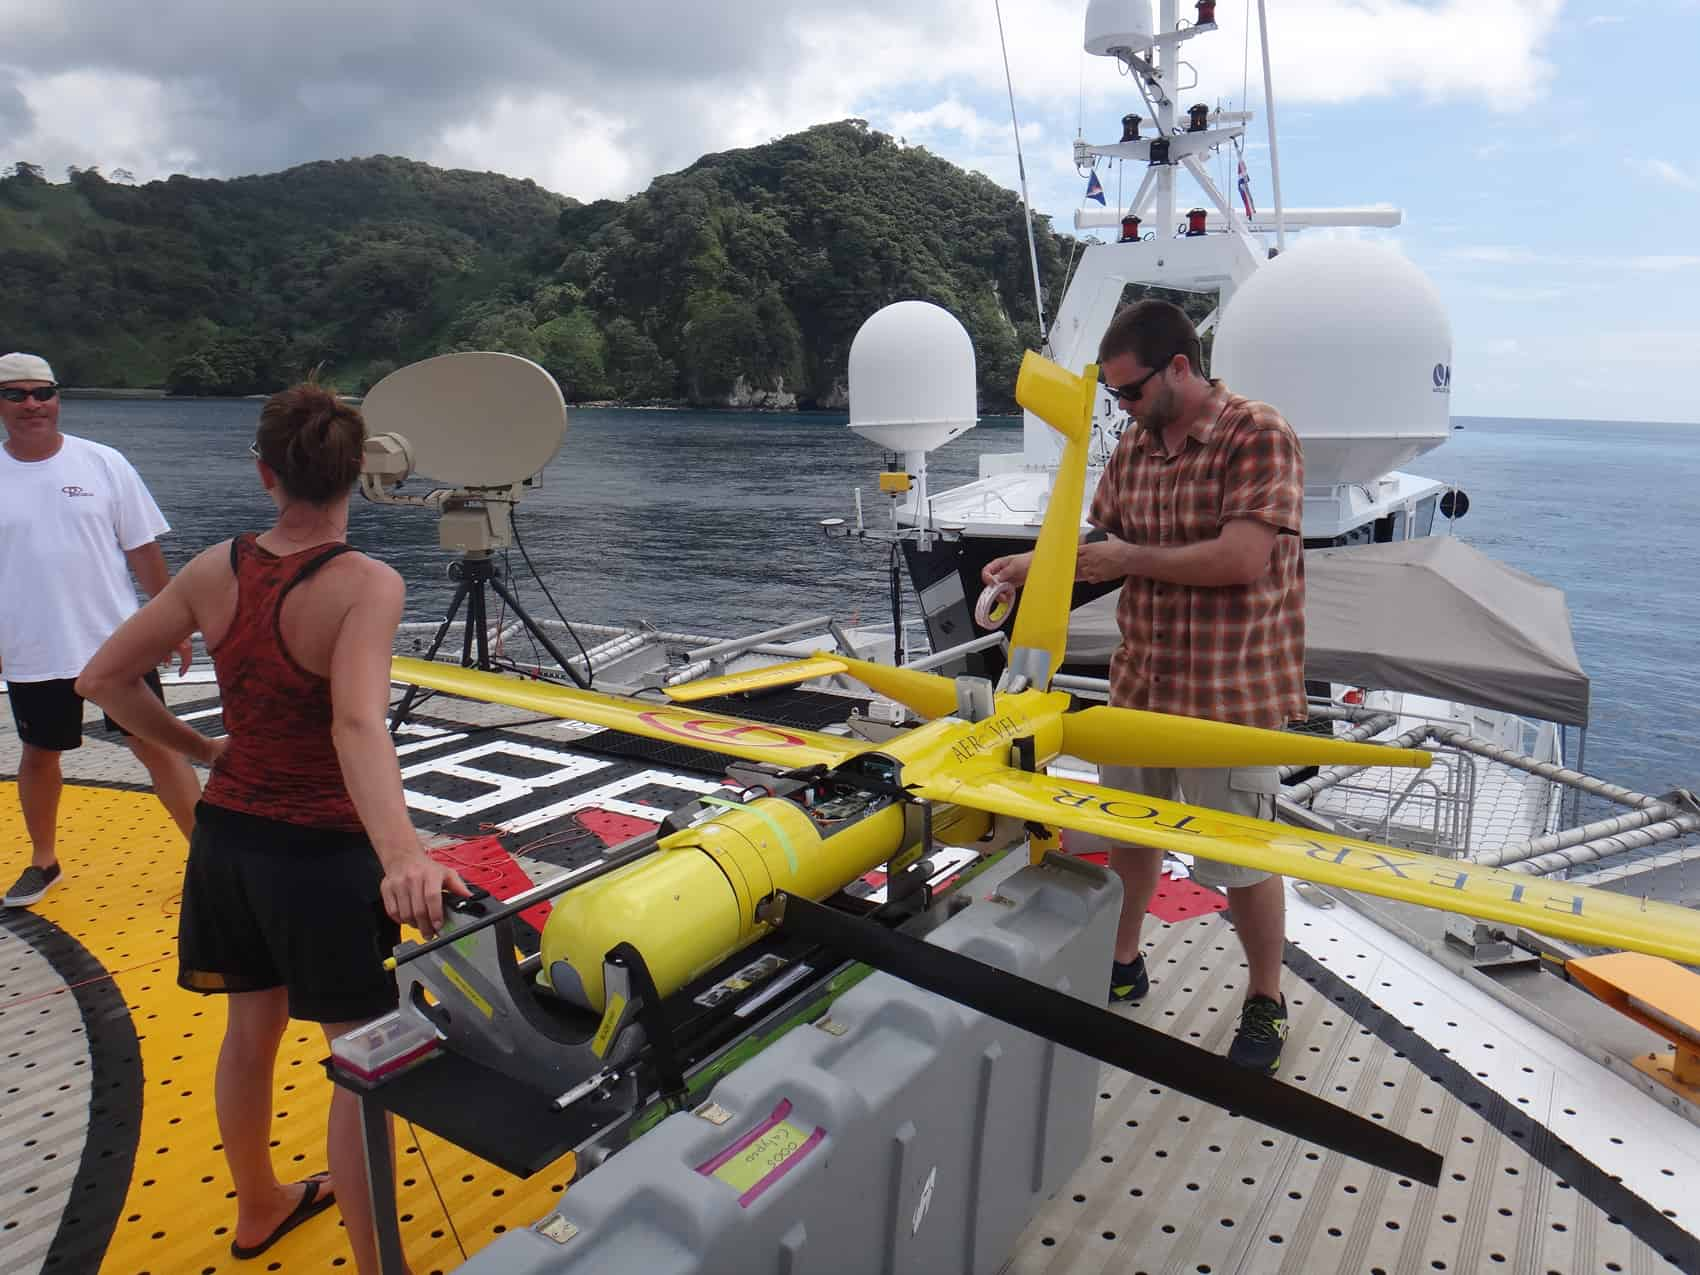 Charissa Moen of Precision Integrated and Andy Crafts of UAV manufacturer Aeroval inspect a Flexrotor drone during a test flight in Cocos Island in May, 2015.